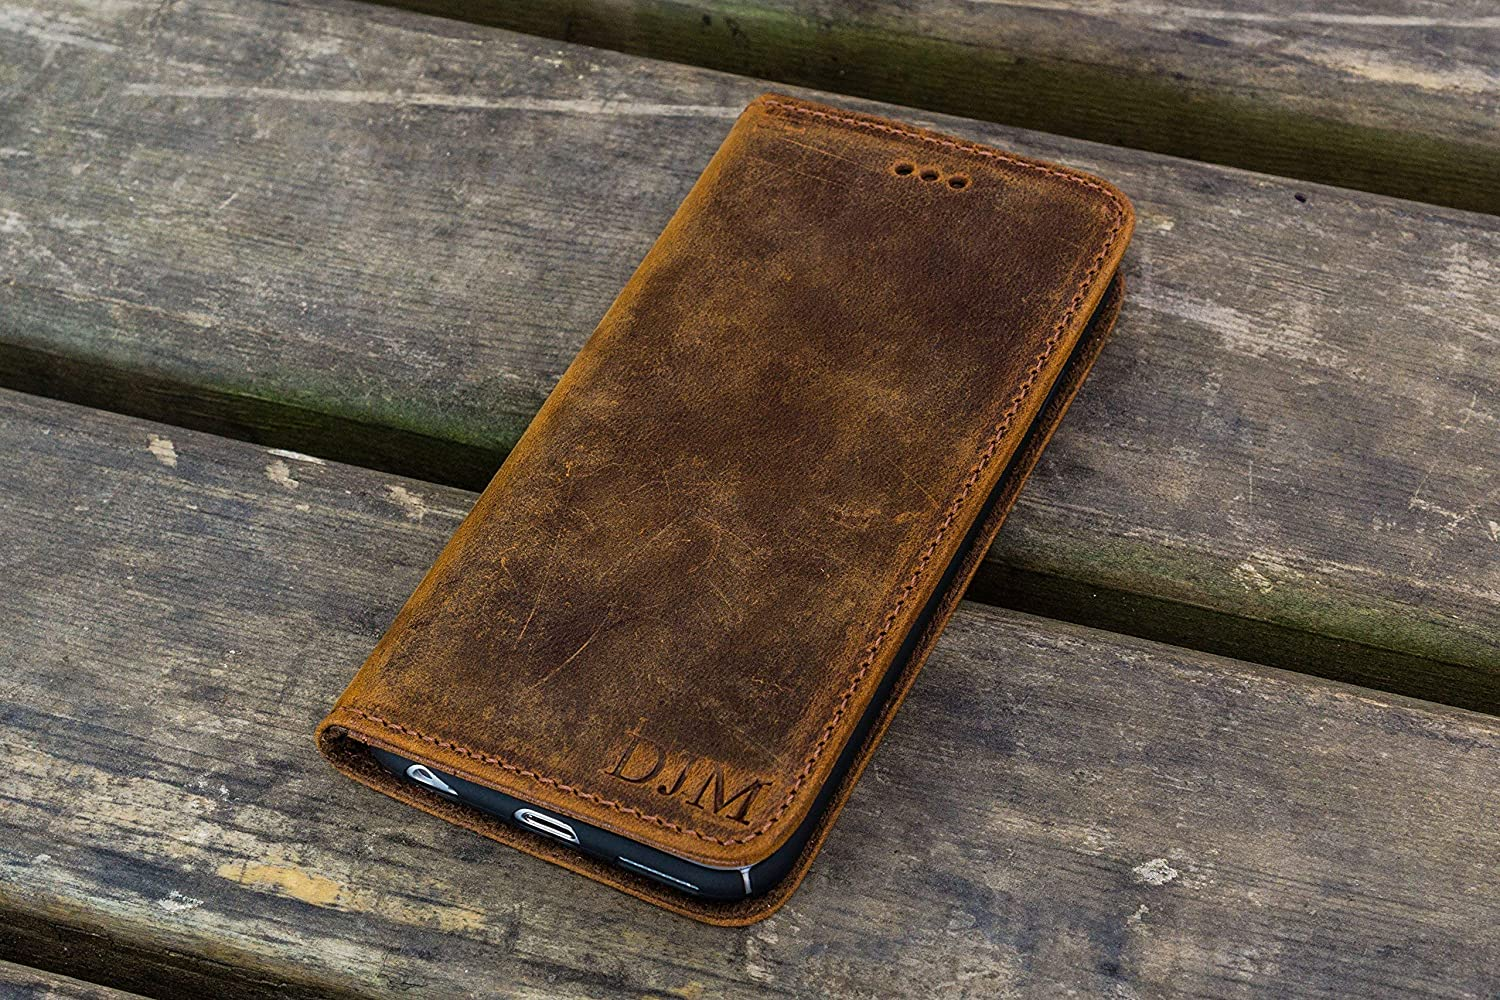 Leather iPhone 7 Wallet Case - No.01